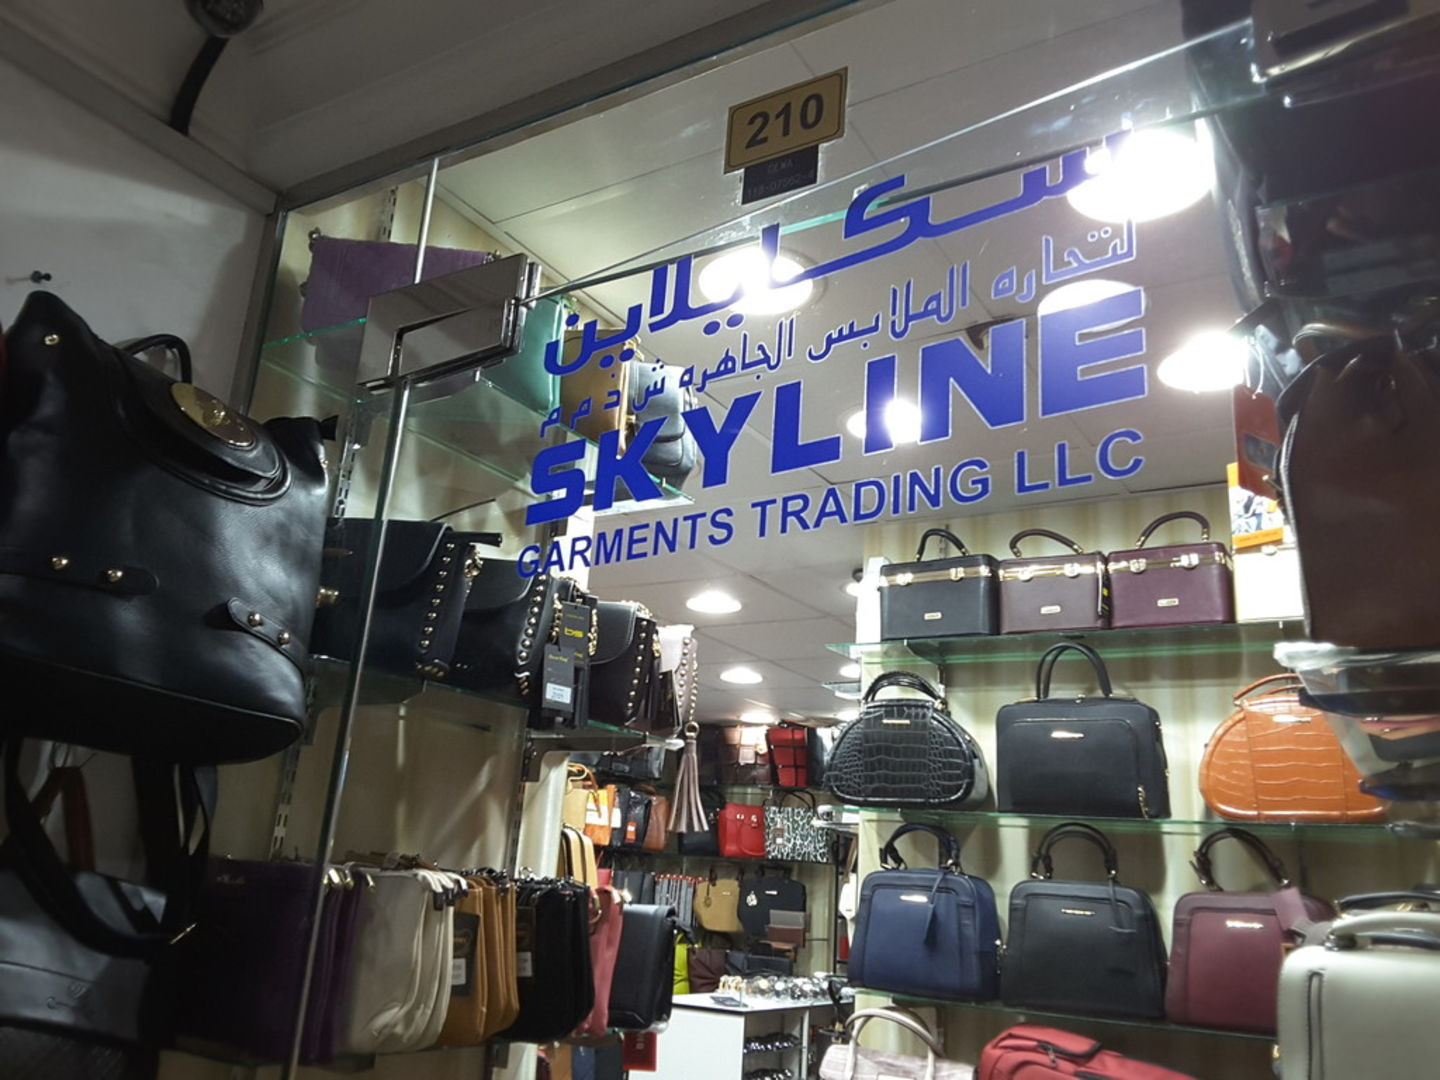 HiDubai-business-skyline-garments-trading-shopping-luggage-travel-accessories-naif-dubai-2